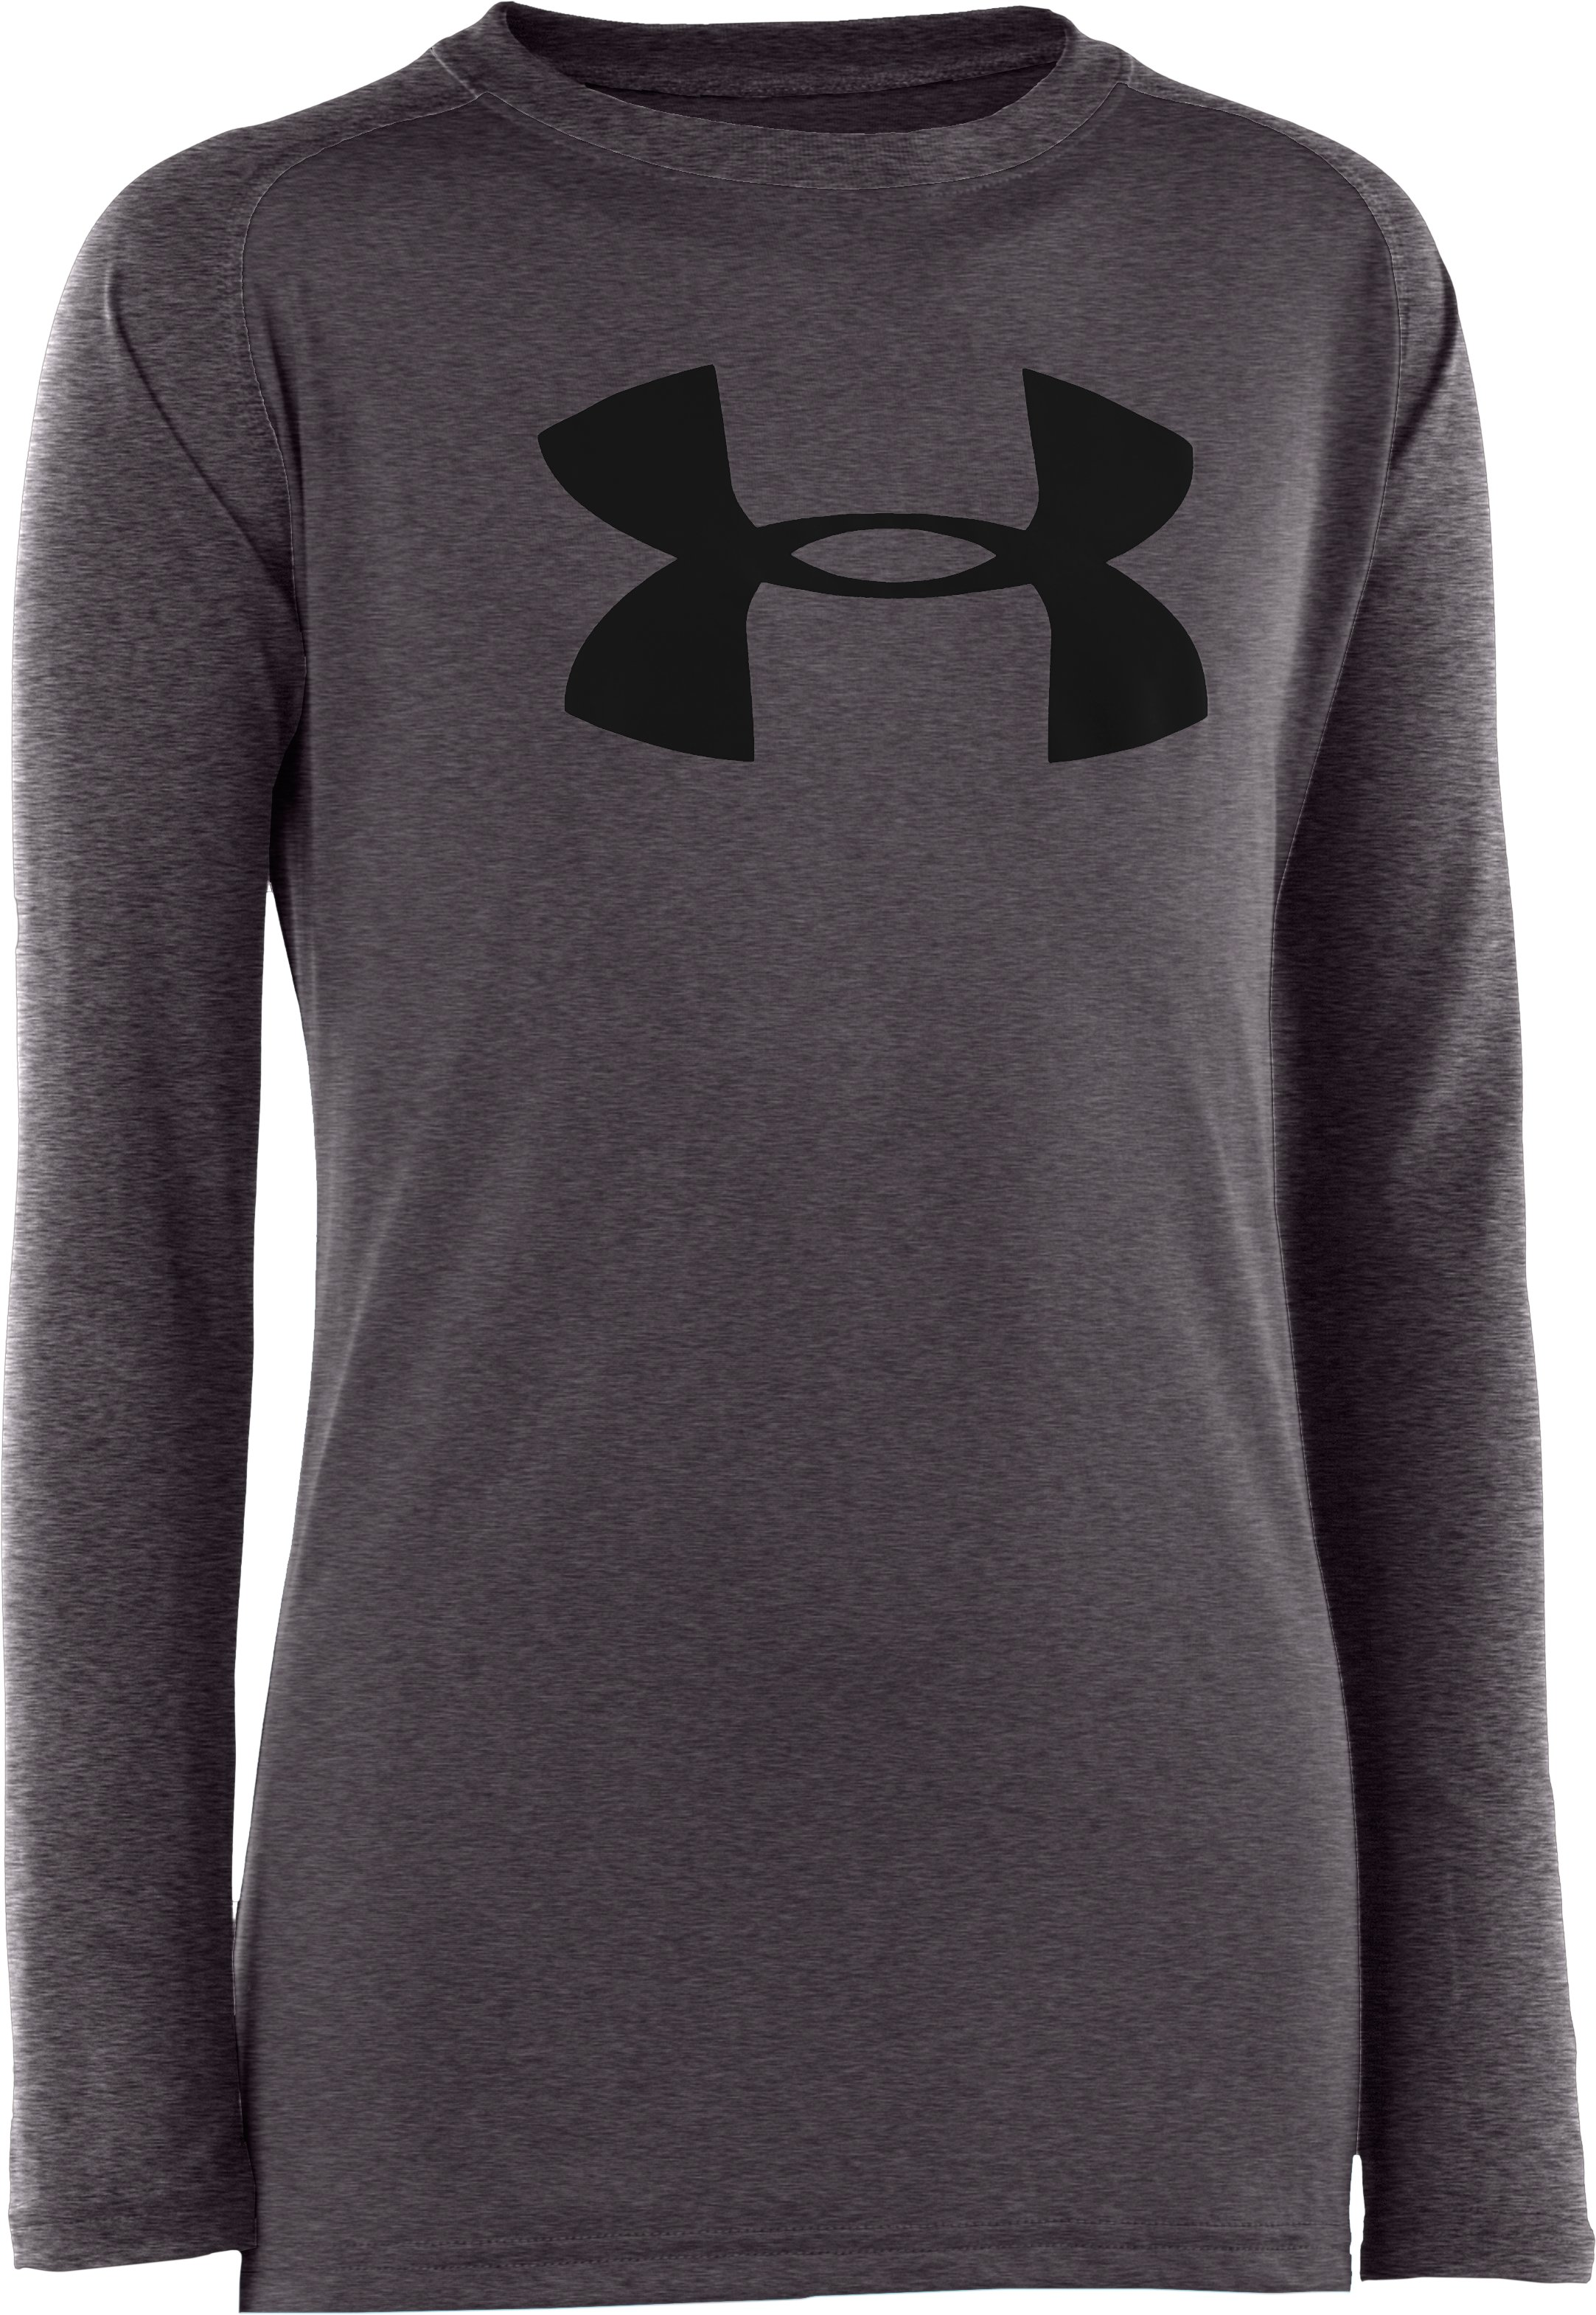 Boys' UA Tech™ Big Logo Long Sleeve T-Shirt, Carbon Heather, undefined